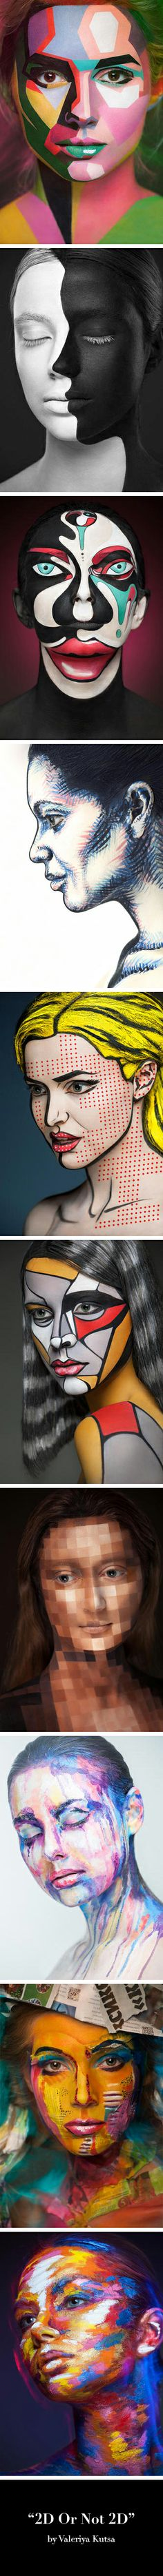 """2D Or Not 2D"" by Russian make-up artist Valeriya Kutsan. Photography by Alexander Khoklov and post-processing expert Veronica Ershova."